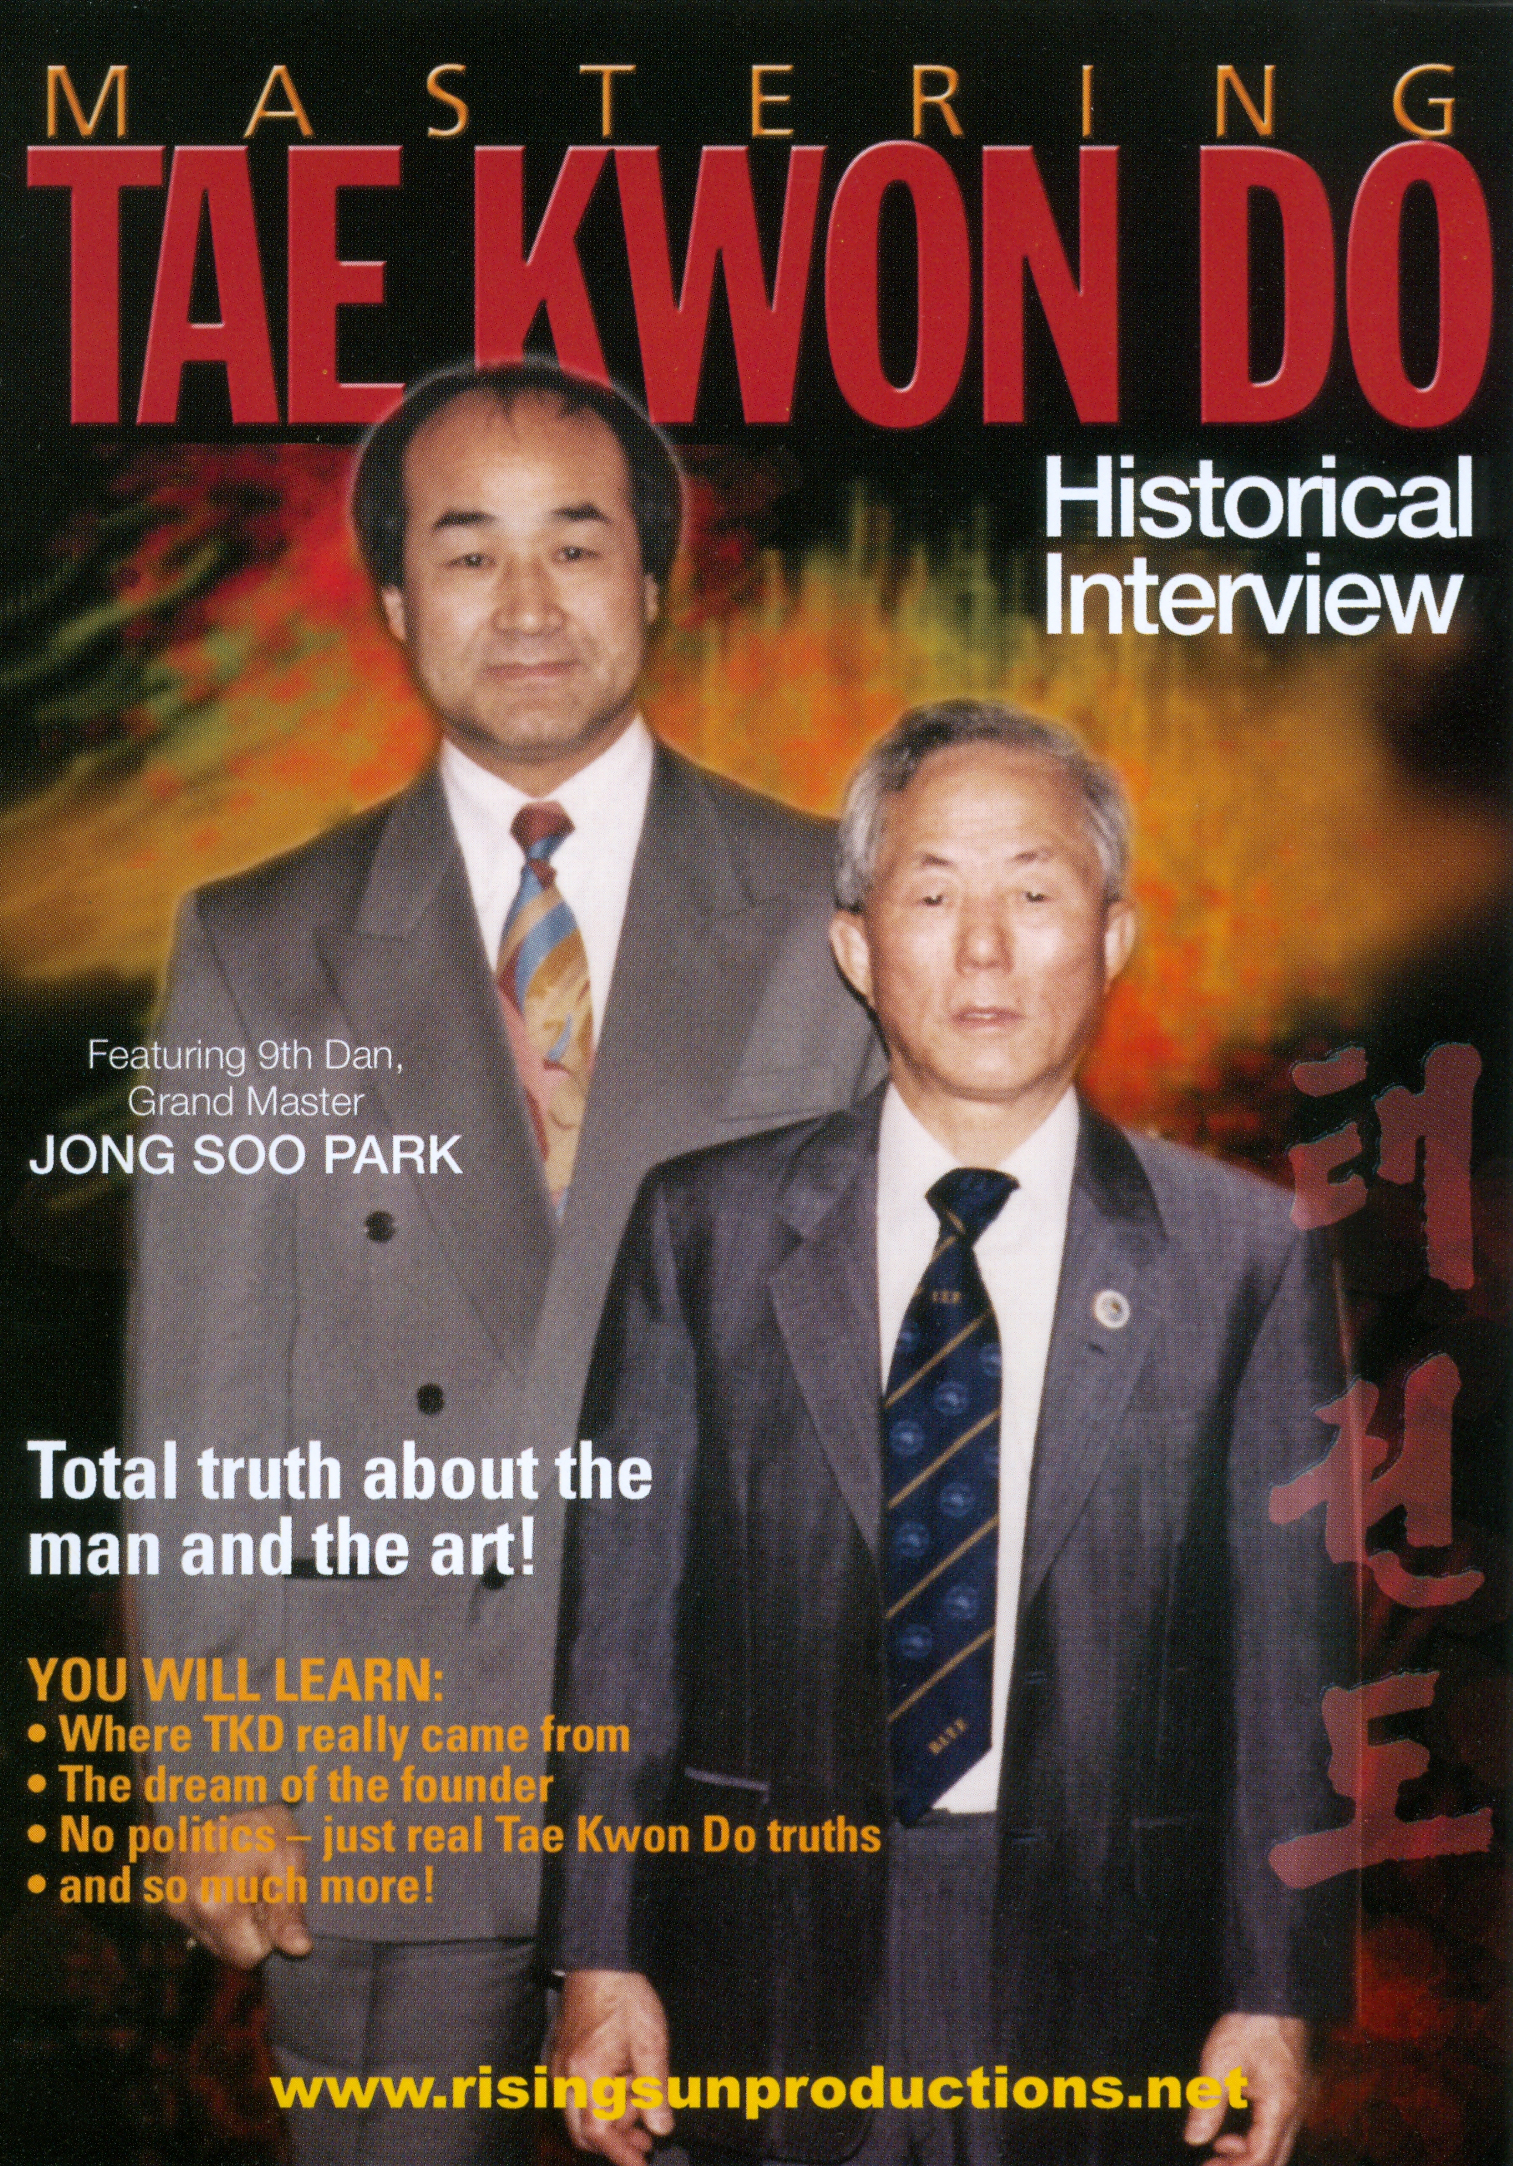 Mastering Tae Kwon Do: Historical Interview